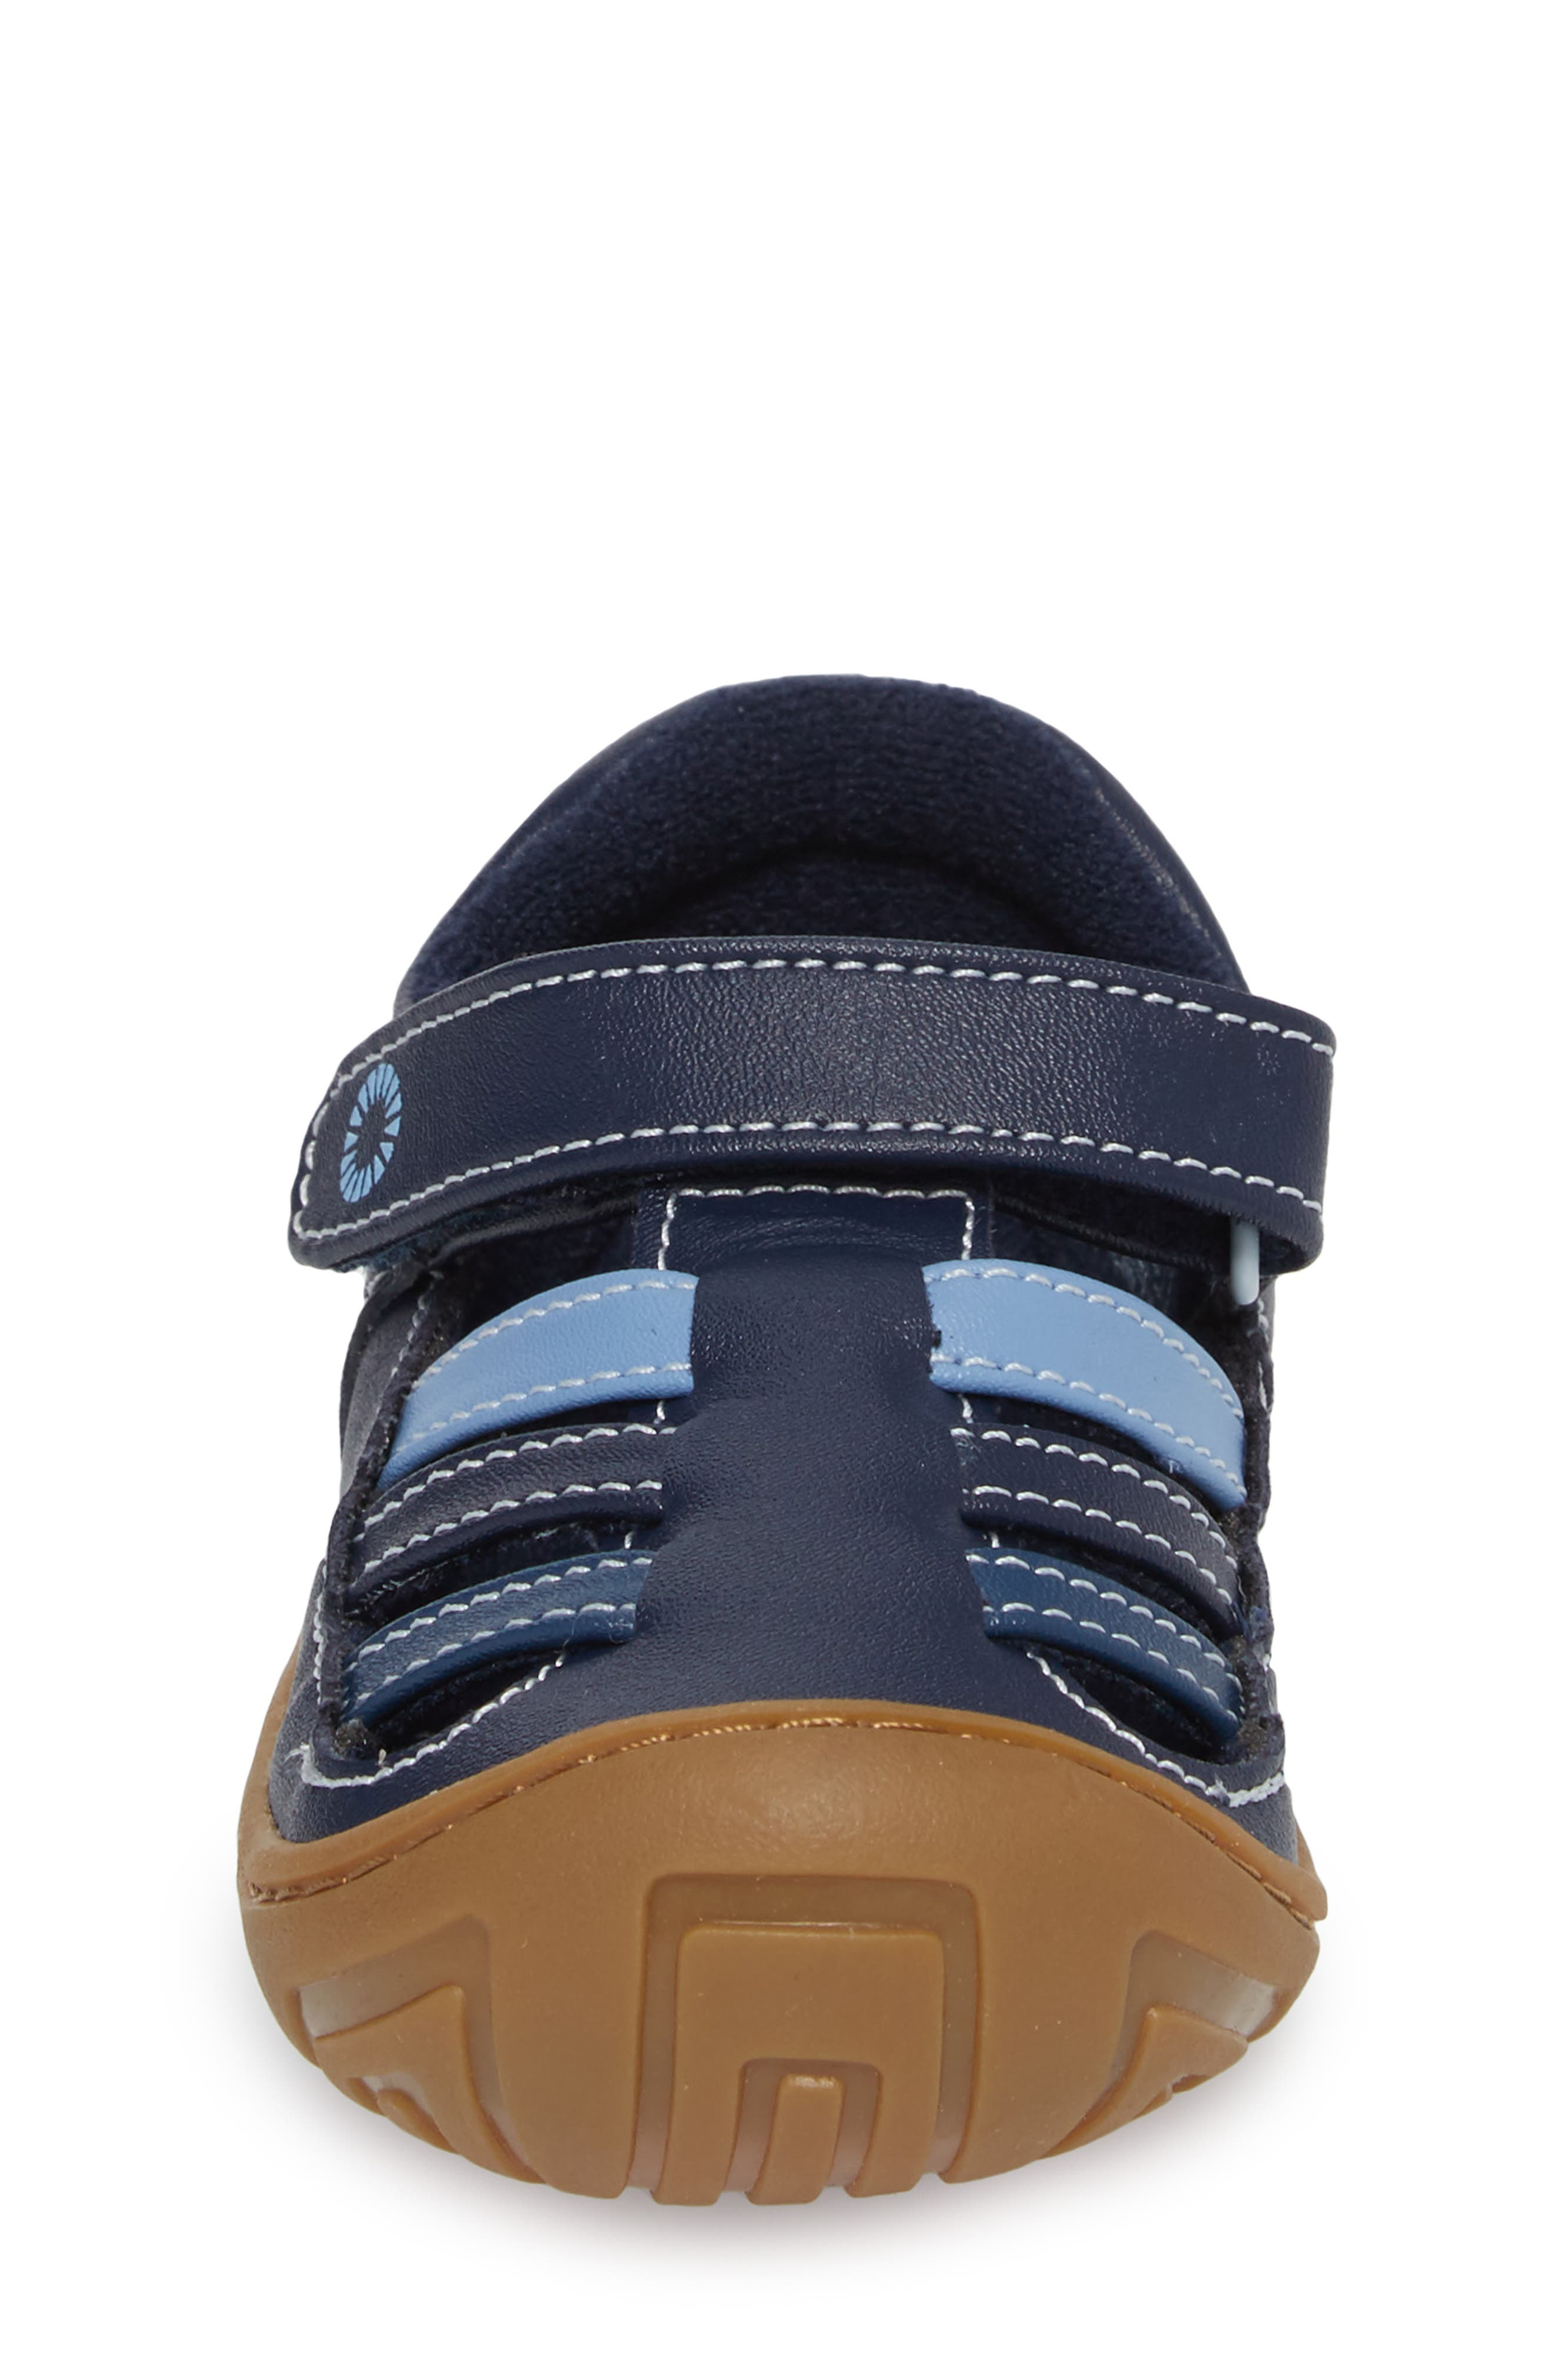 Santore Sandal,                             Alternate thumbnail 4, color,                             NAVY